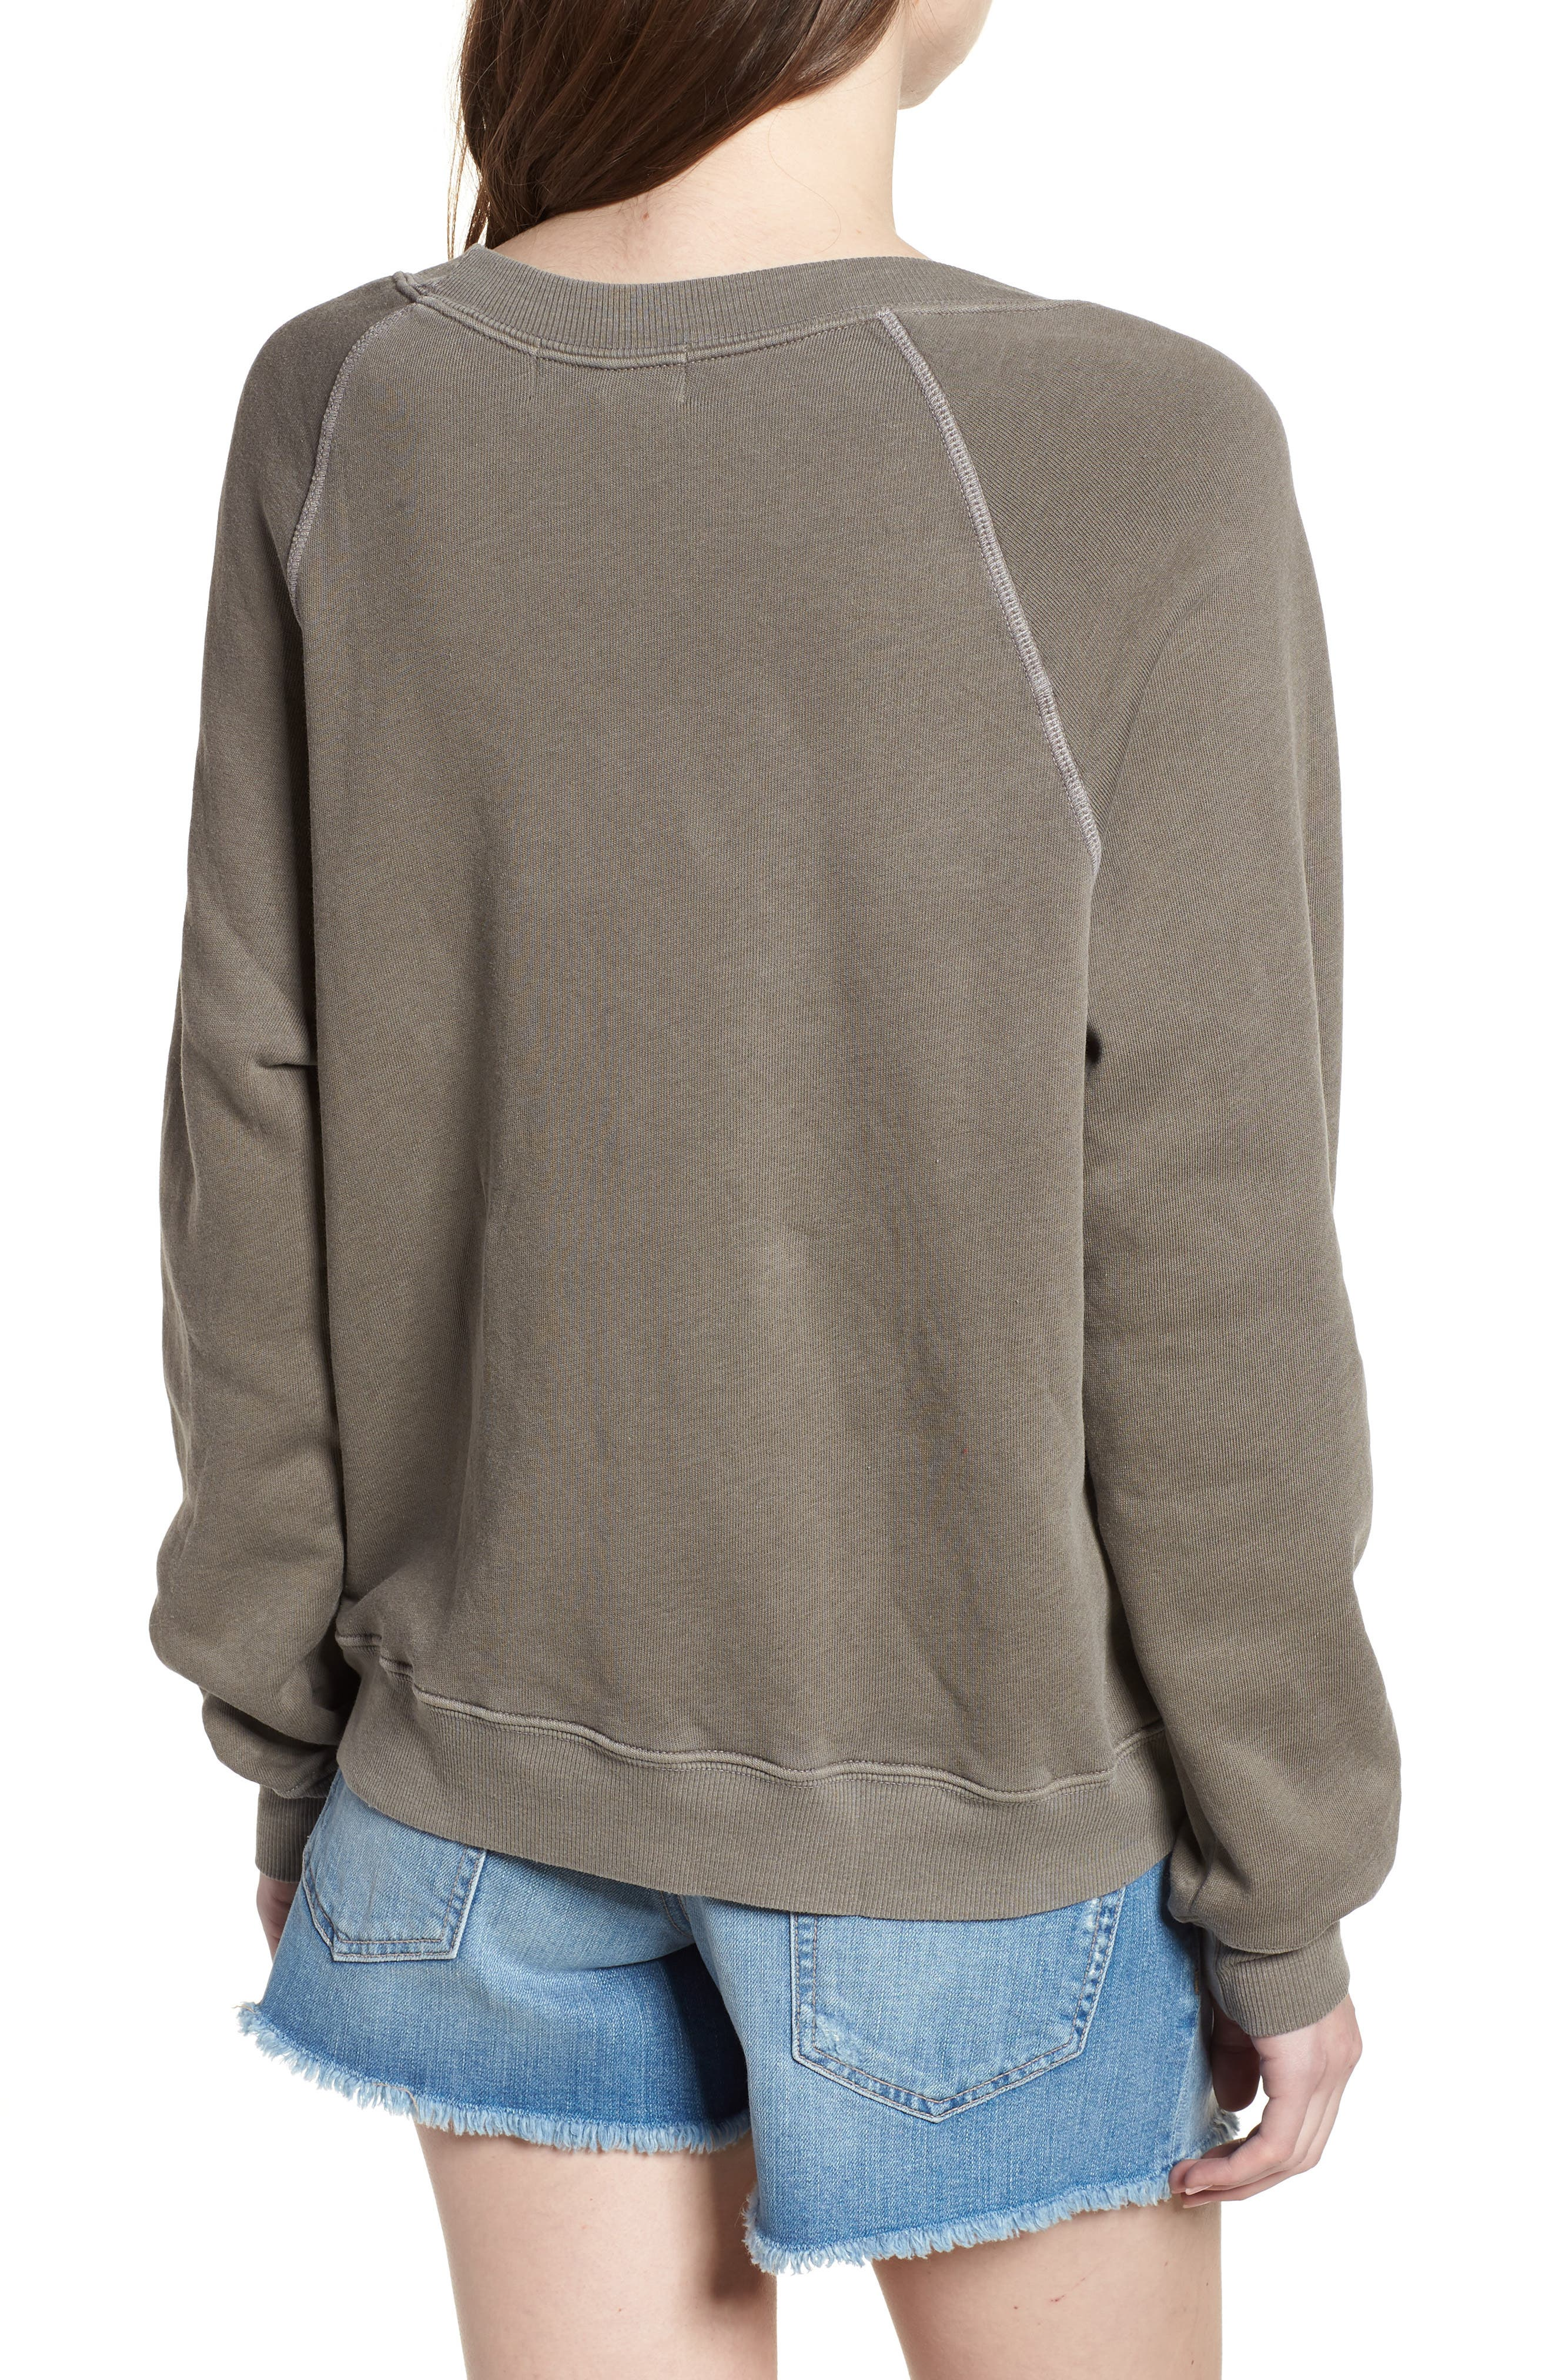 Tender - Sommers Sweatshirt,                             Alternate thumbnail 2, color,                             Od Green